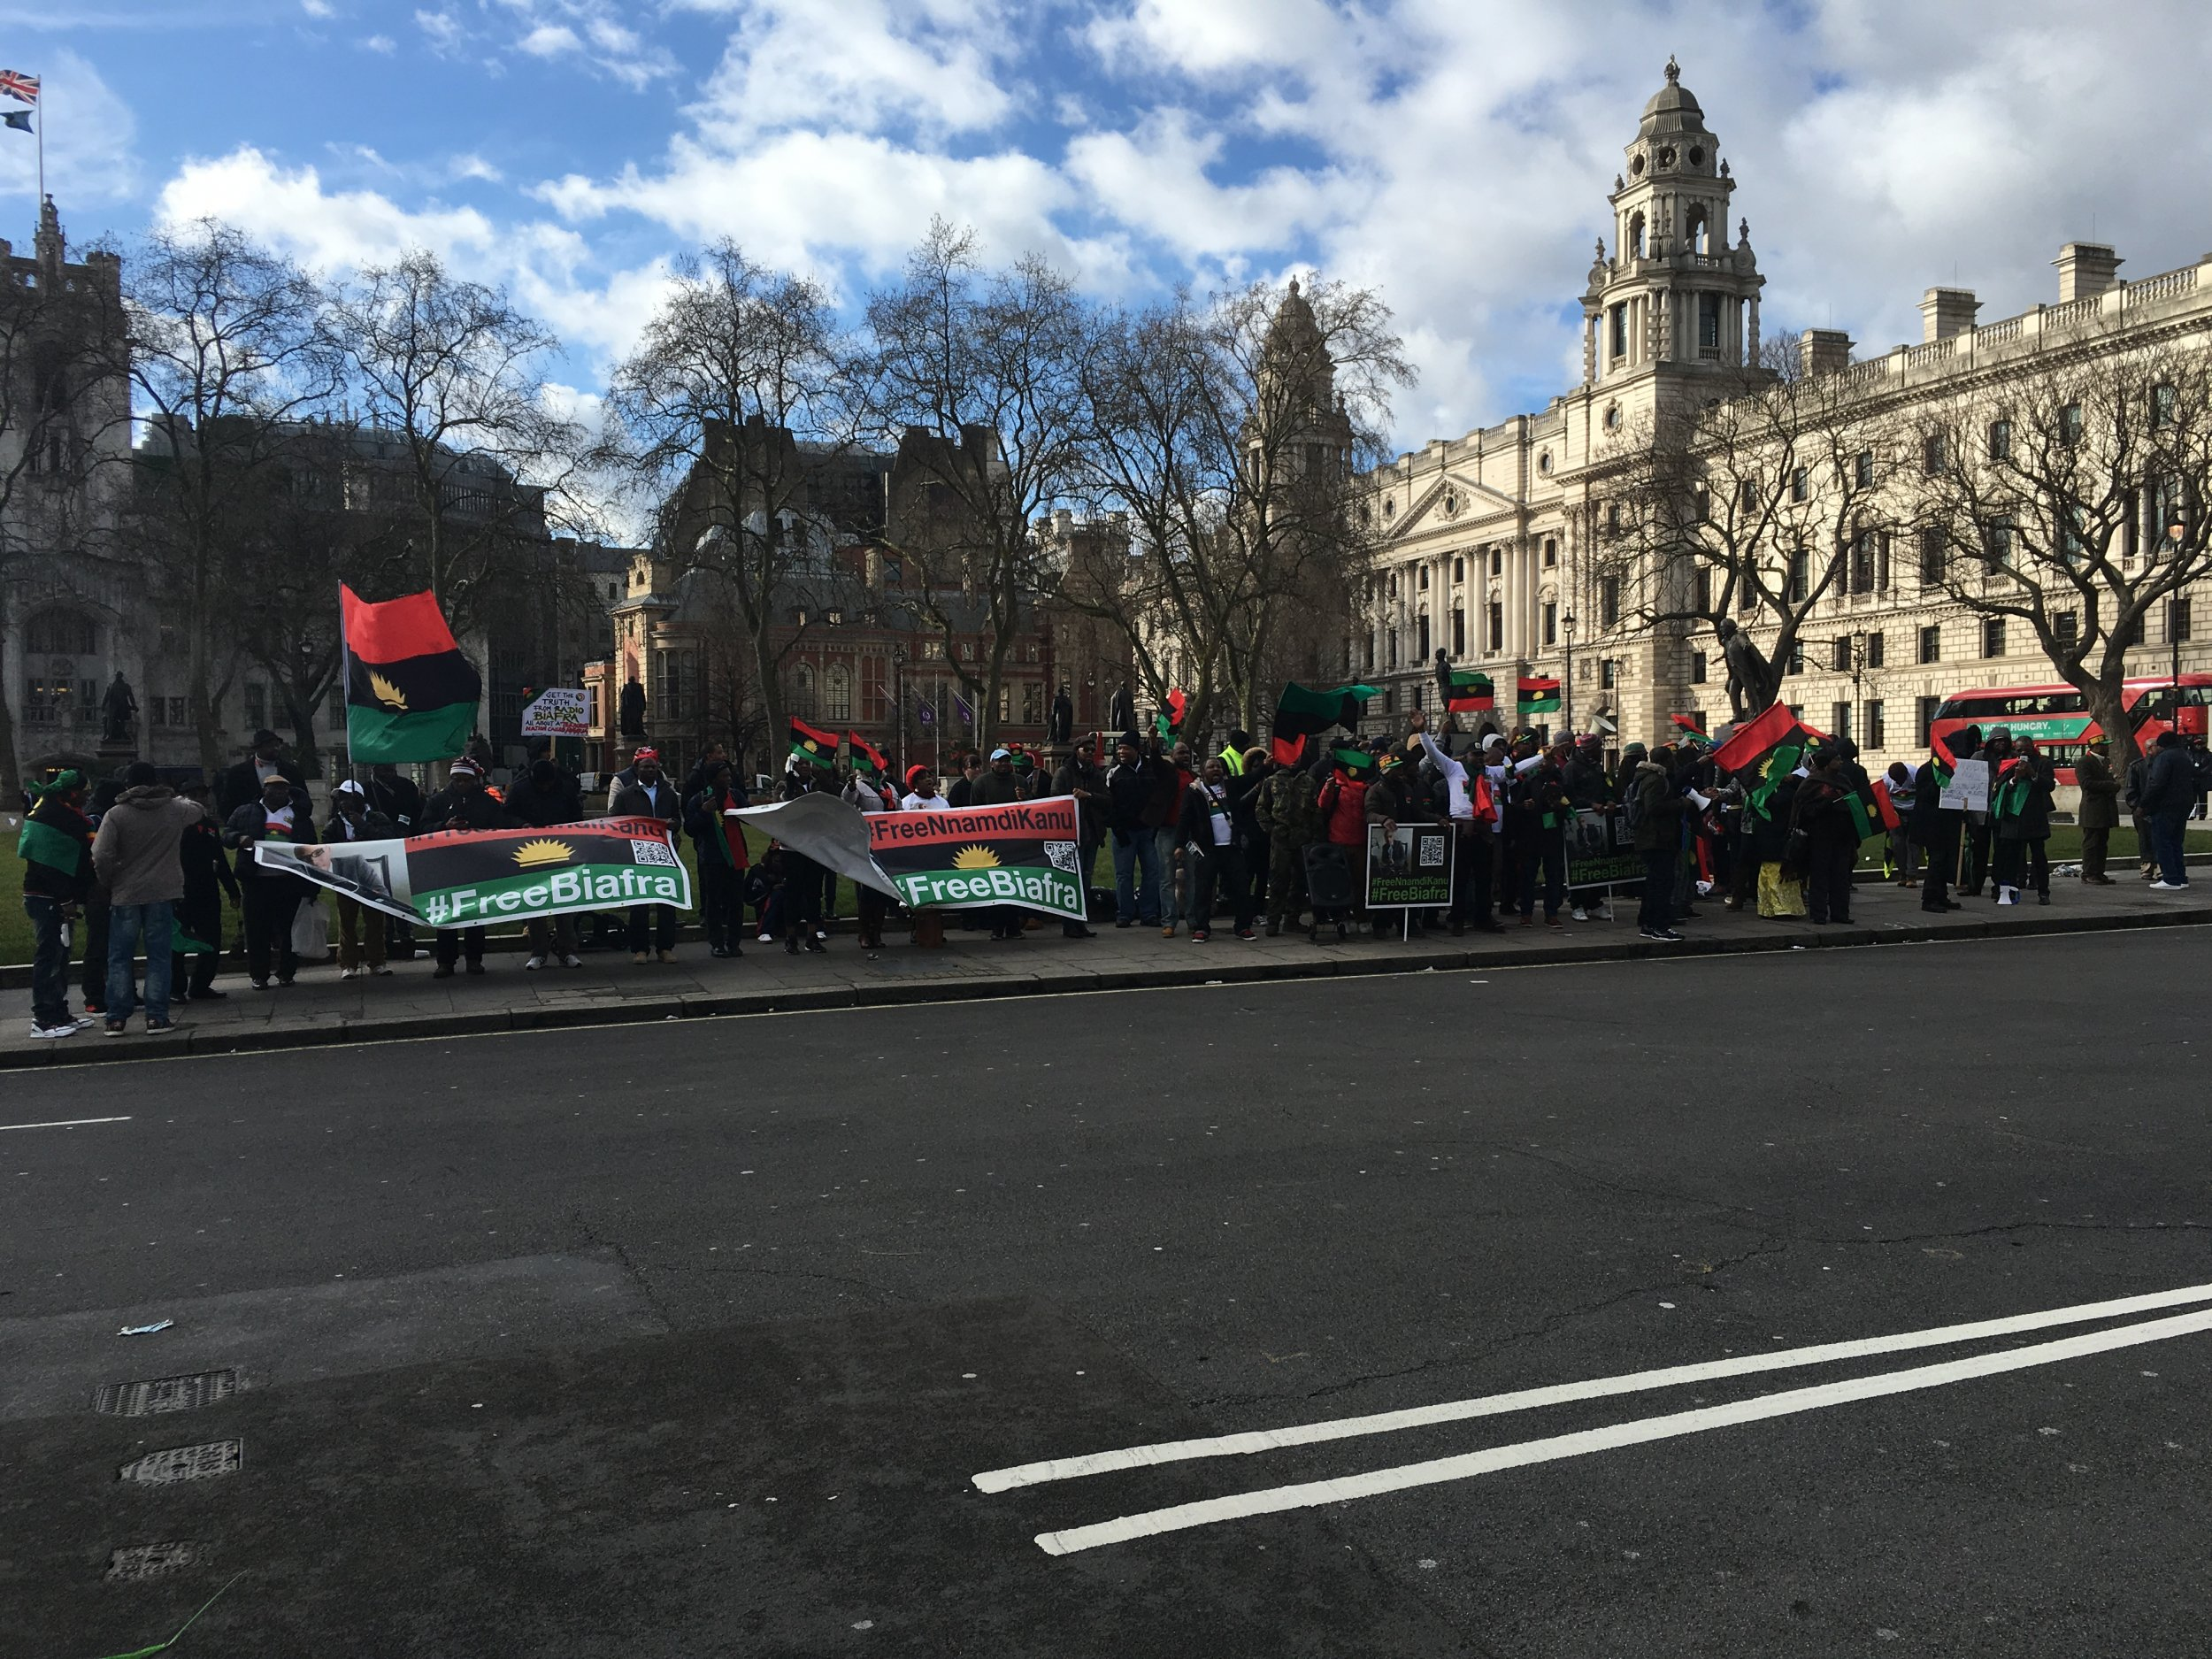 Pro-Biafra demonstrators gather in London.